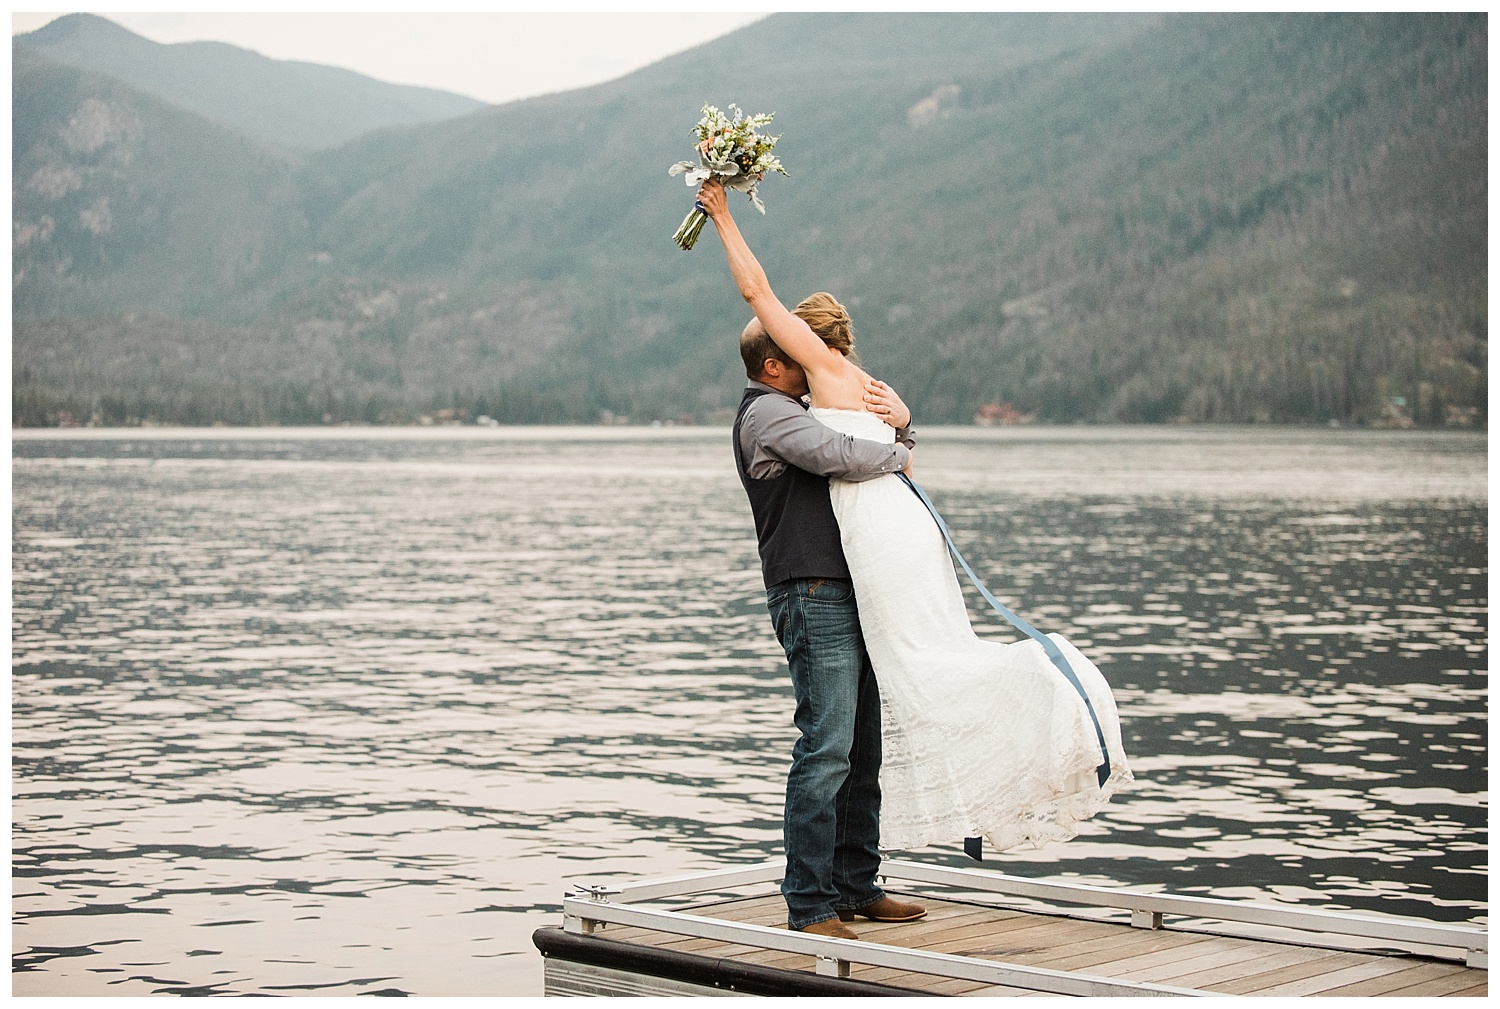 Western_Riviera_Wedding_Venue_Lake_Grandby_Colorado_Apollo_Fields_22.jpg